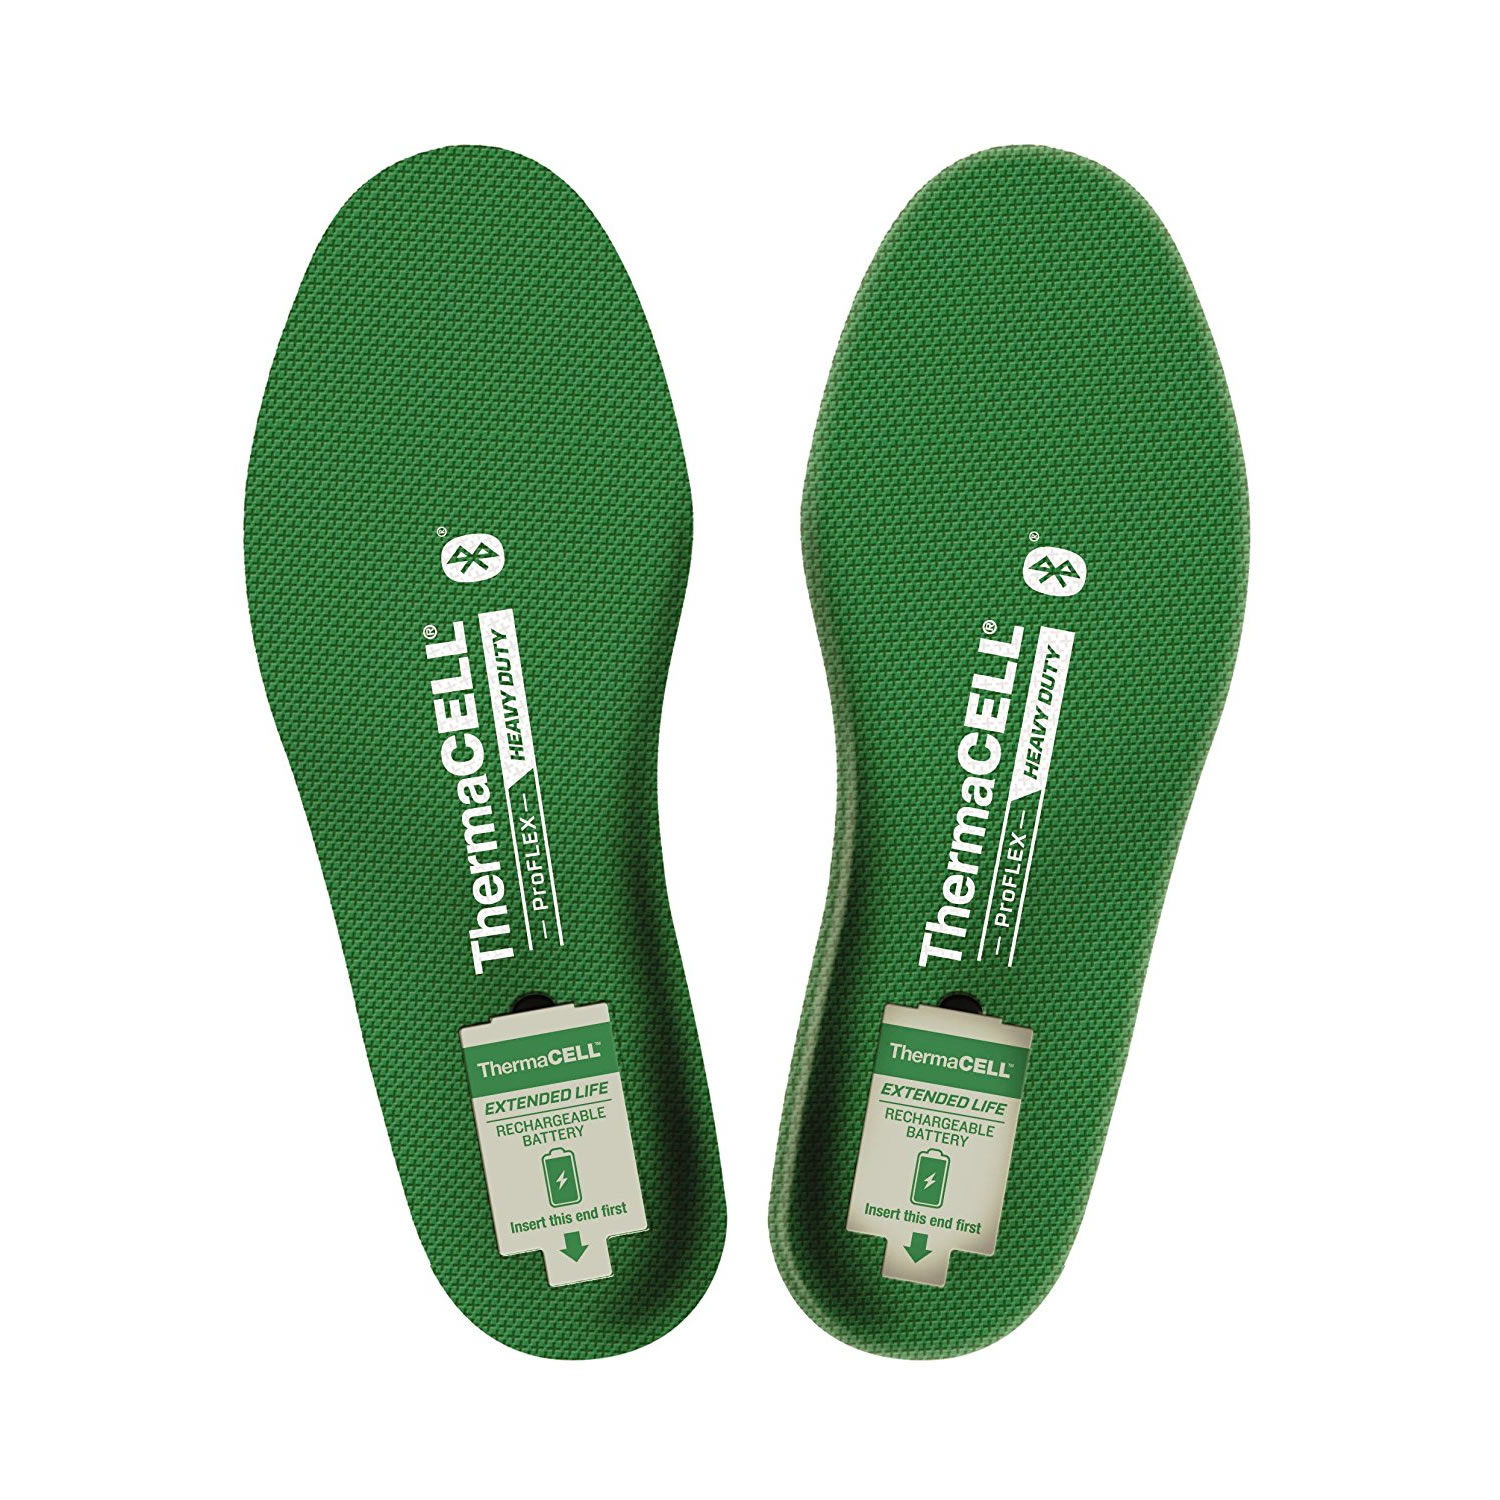 ThermaCELL ProFLEX Heavy Duty Heated Insoles with Bluetooth - Size X-Large